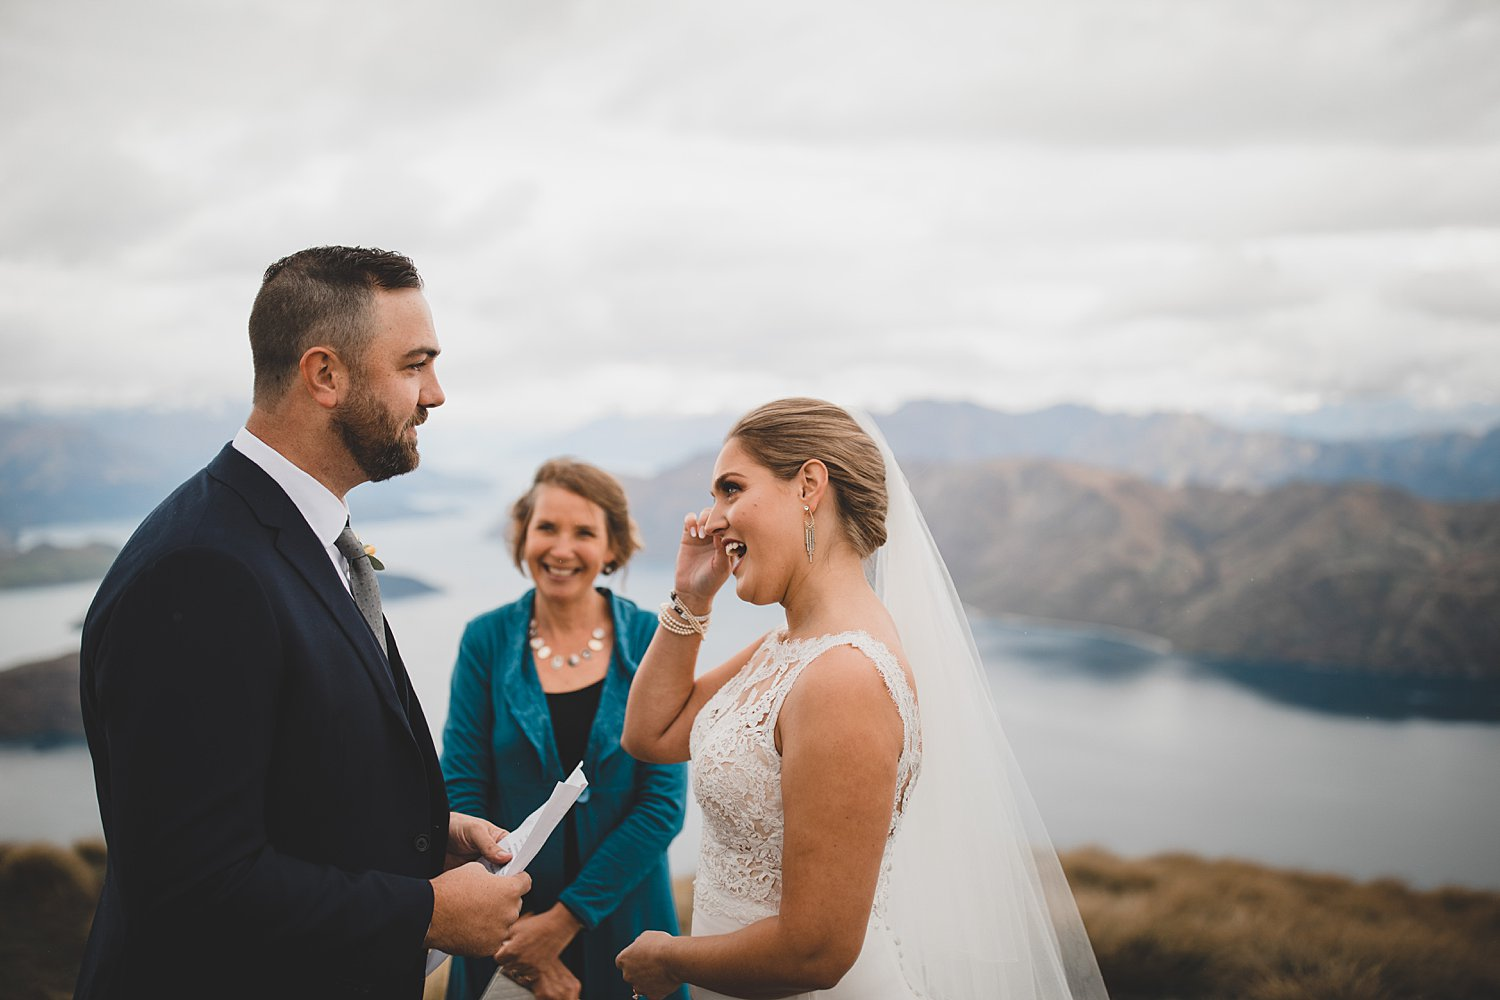 Roys Peak Mountain Wedding